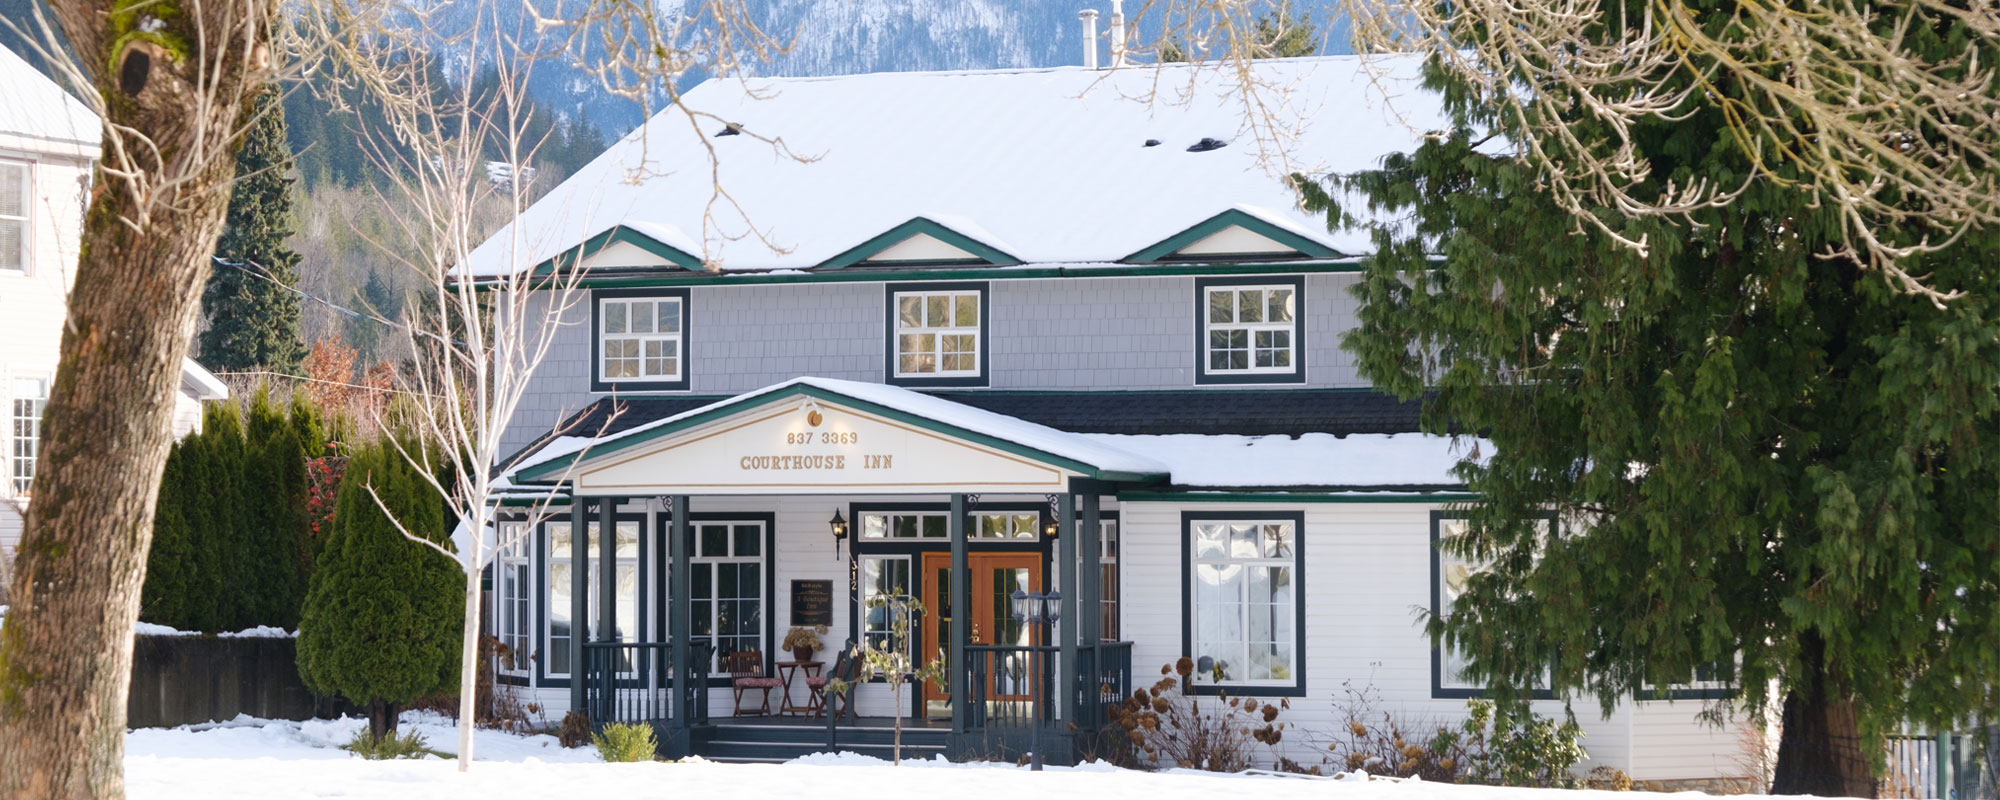 Welcome to the Courthouse Inn in Revelstoke, BC